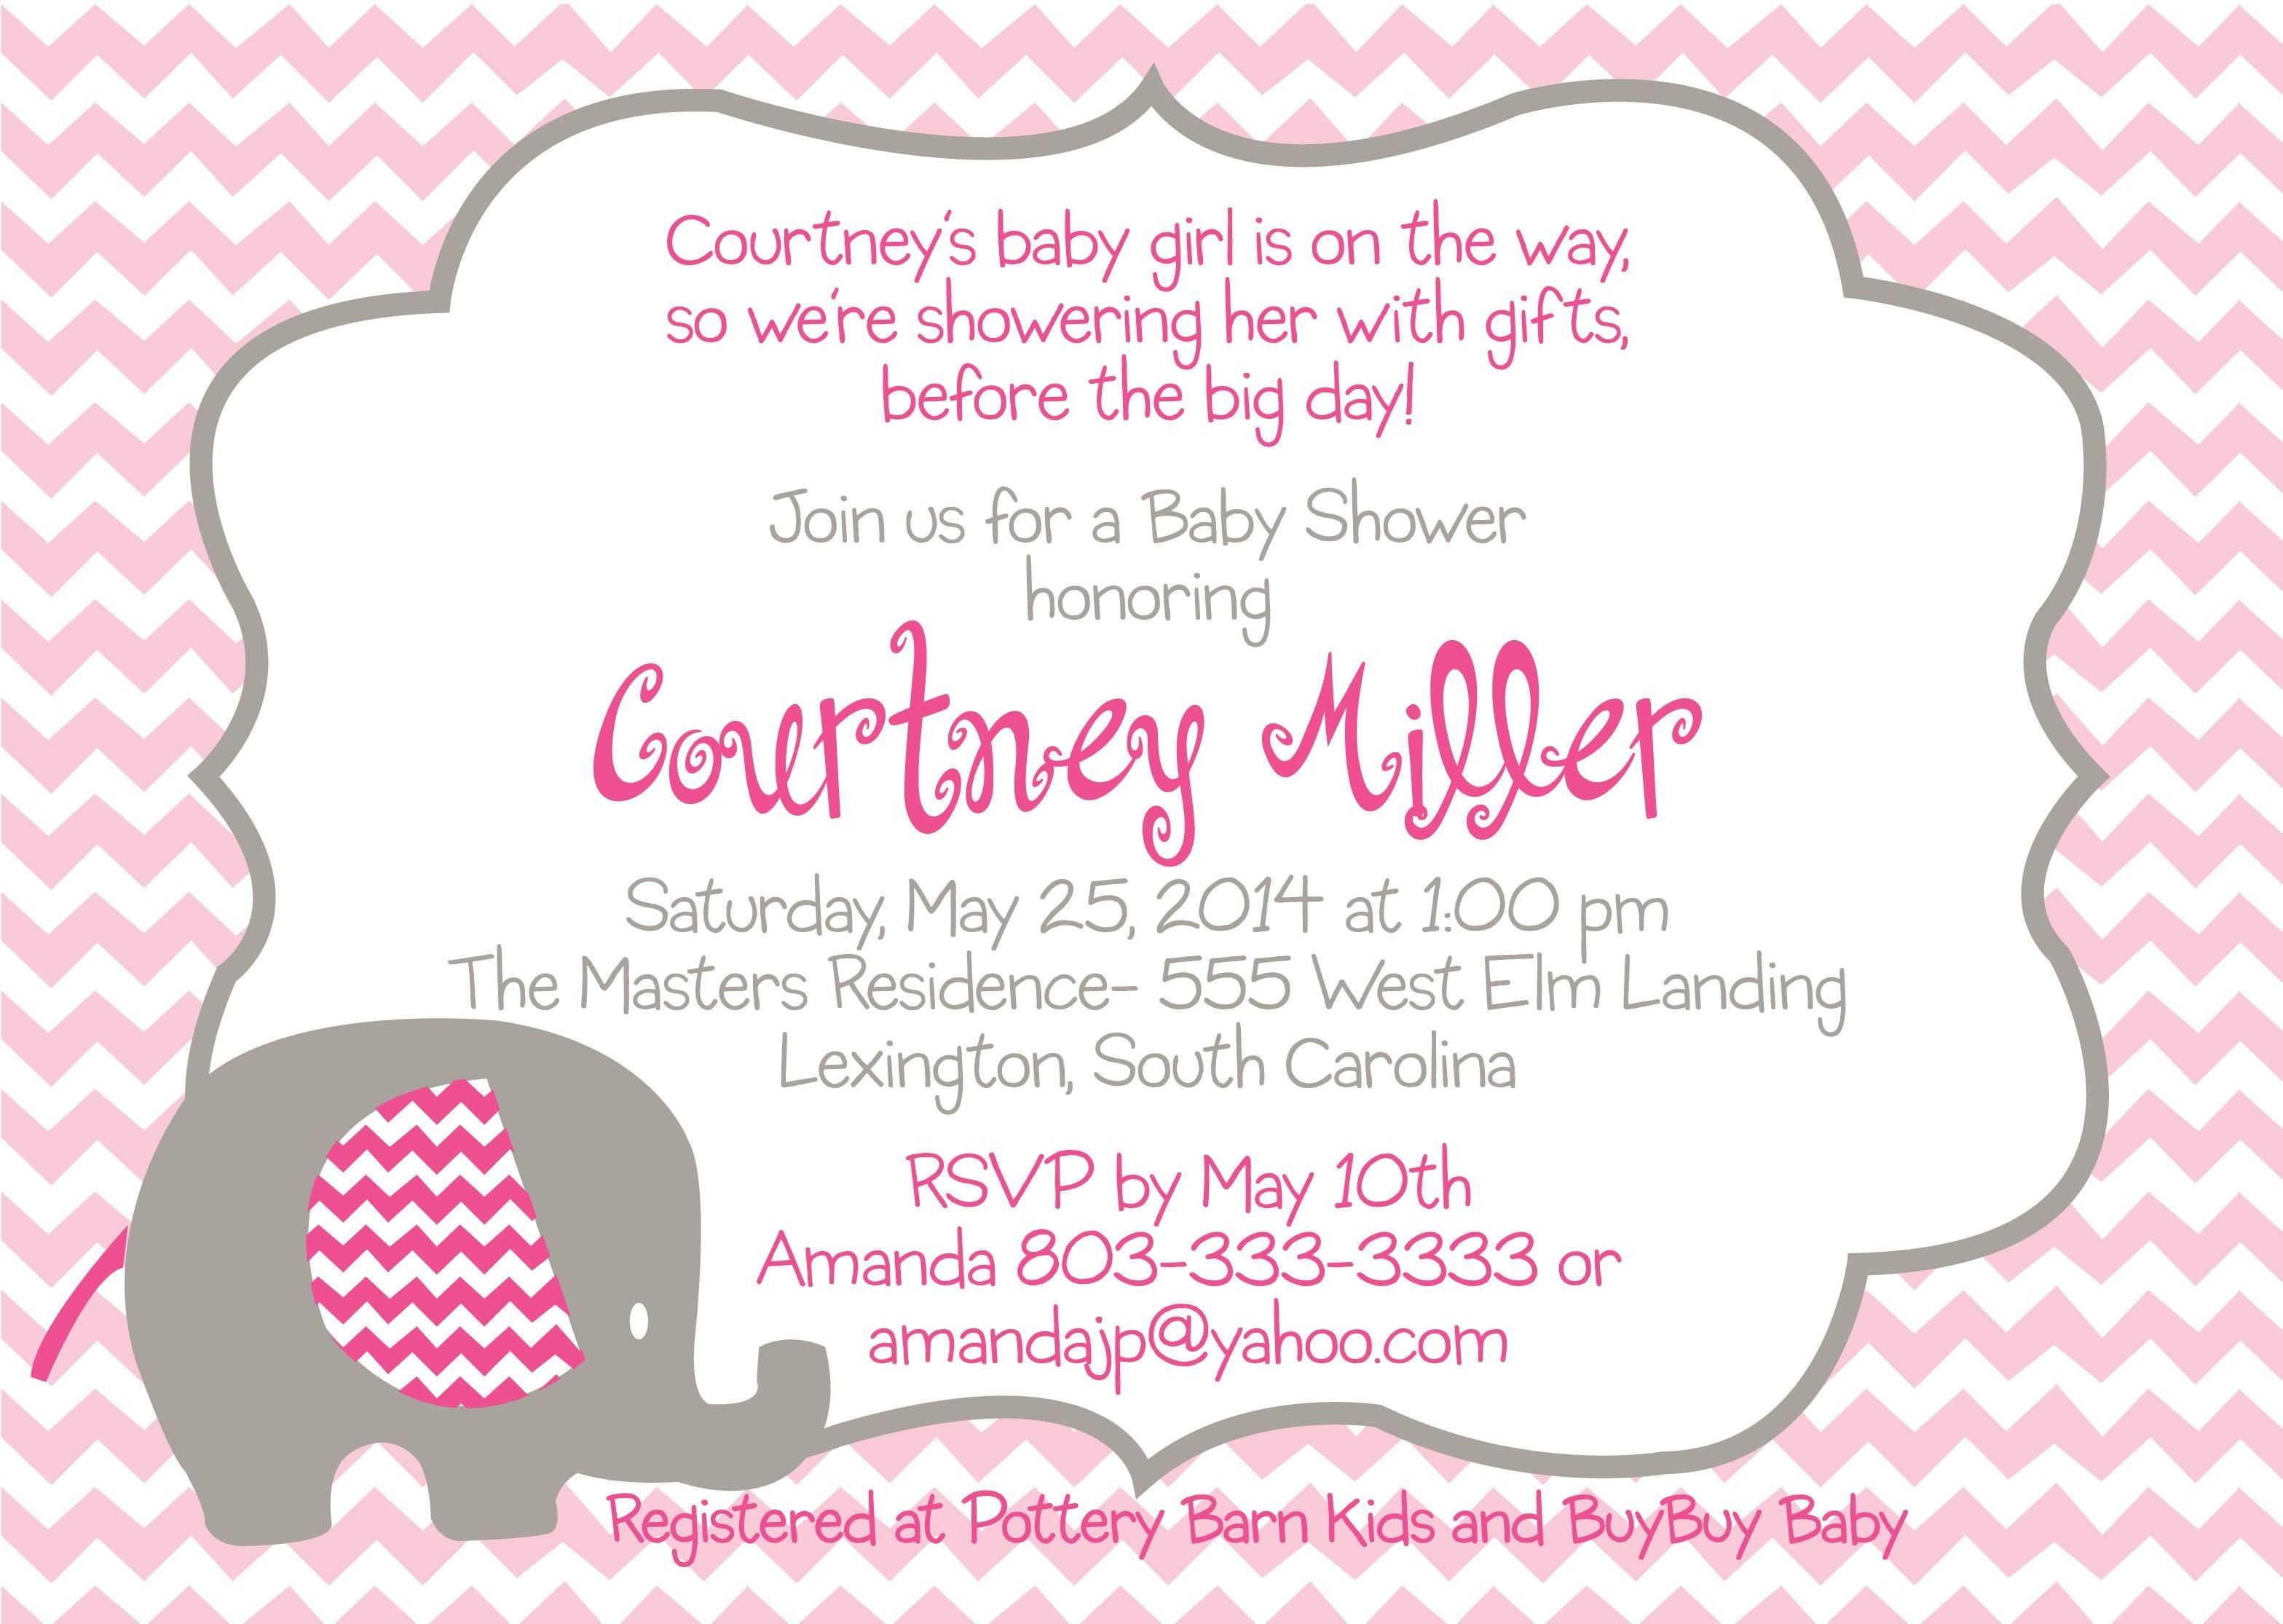 Couples Baby Shower Invitations Wording Ideas   http://atwebry.info ...